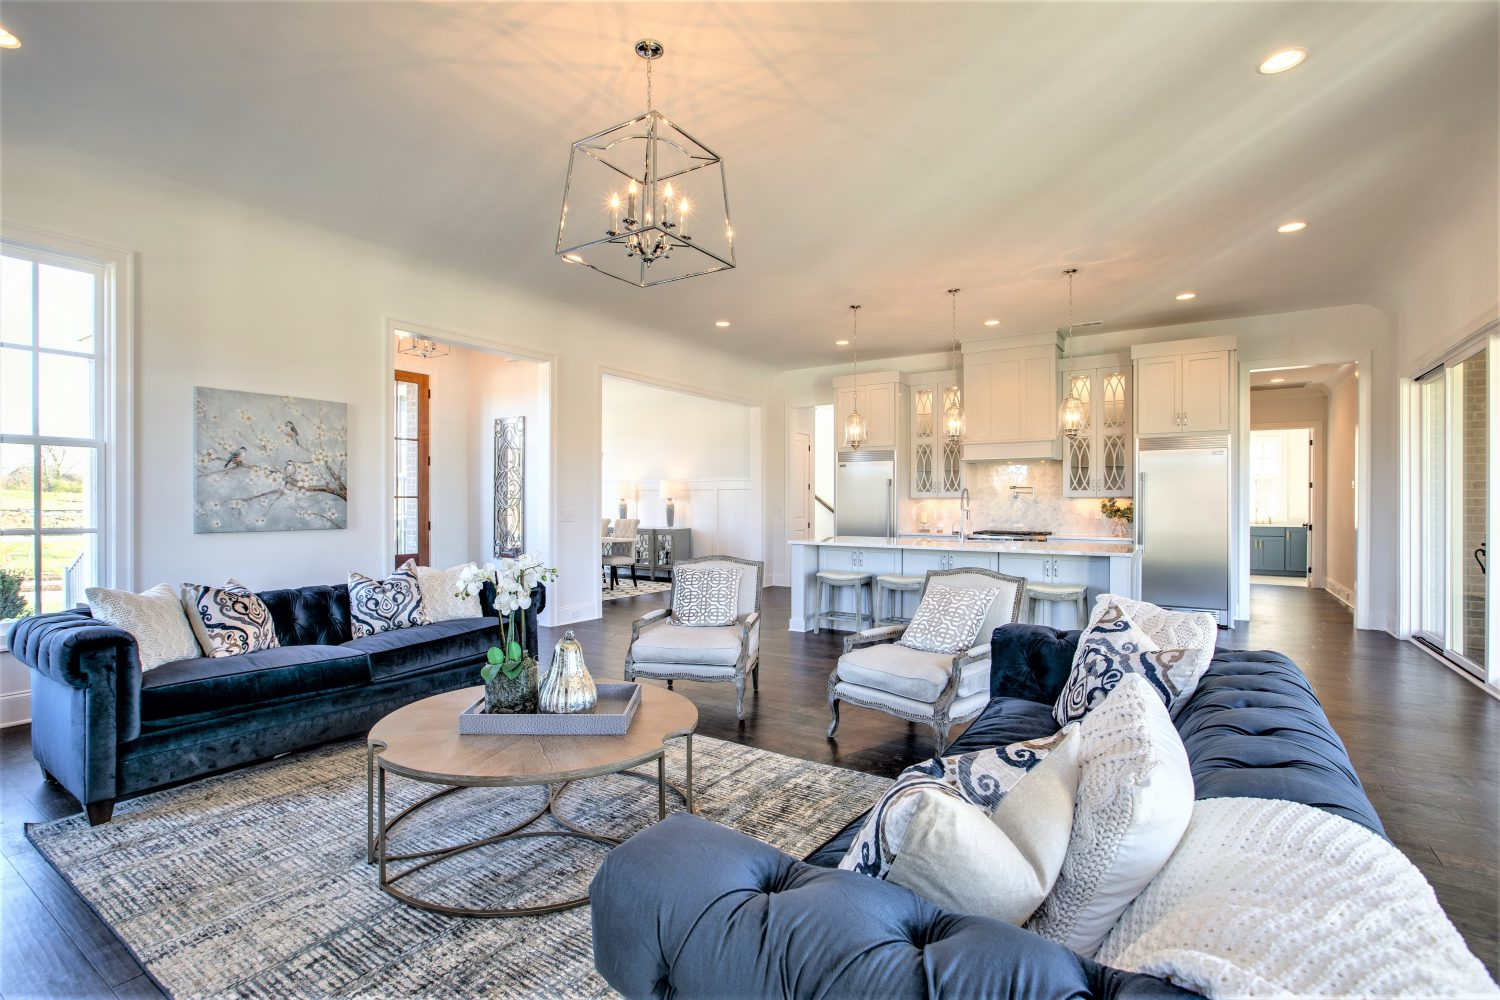 Lot 161 by Sipple Homes